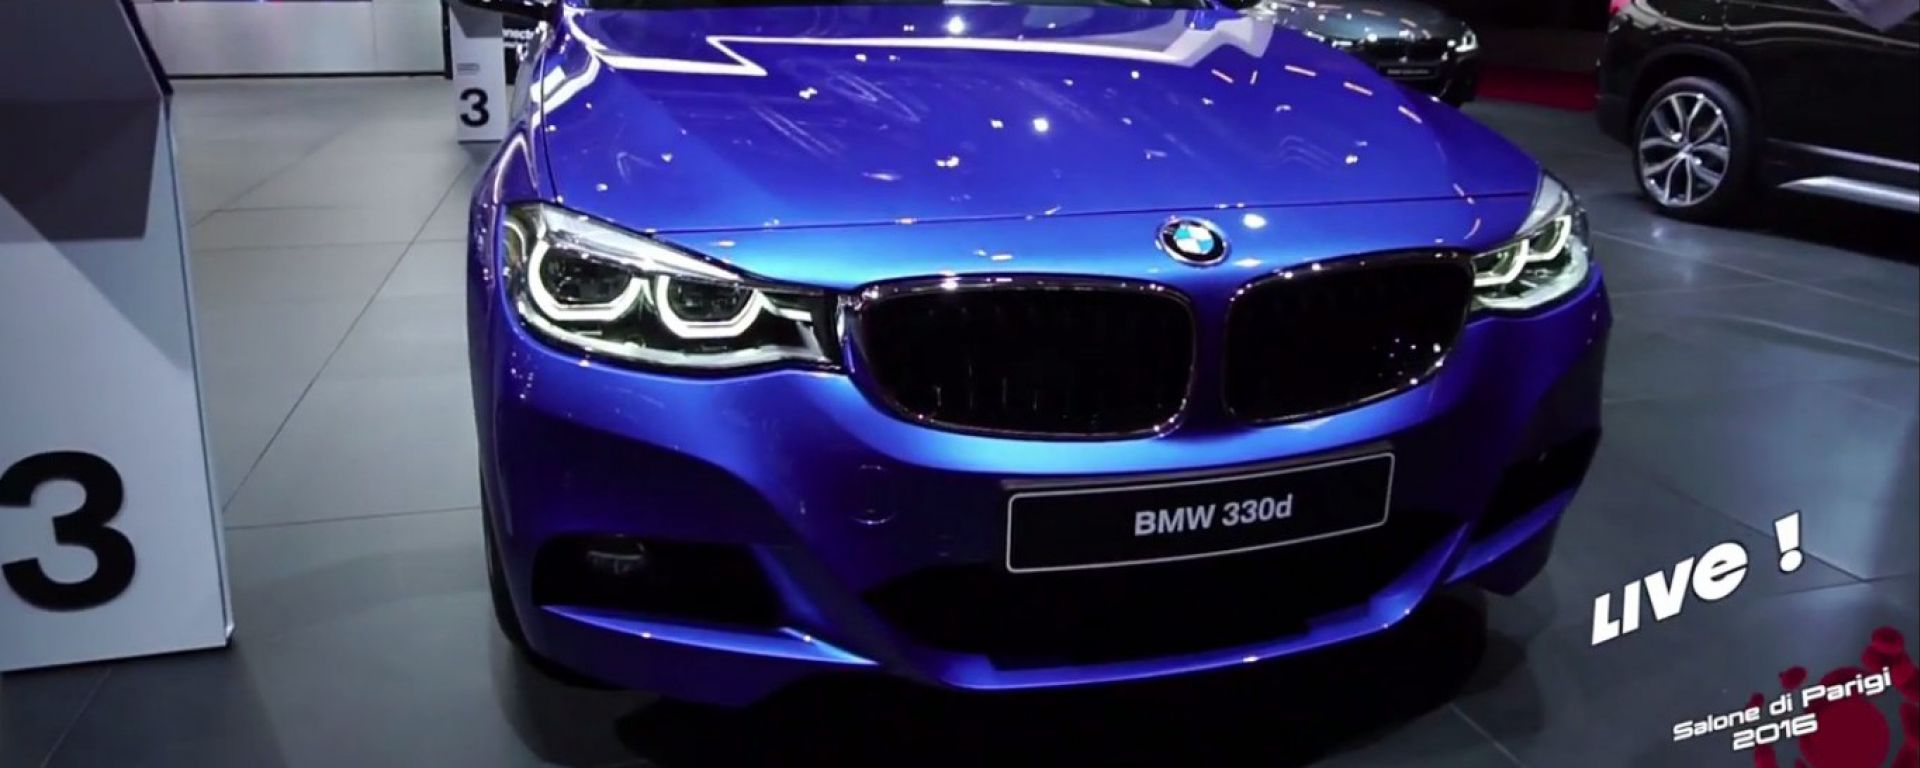 Live Parigi 2016: Nuova BMW Serie 3 GT e i3 2017 in video